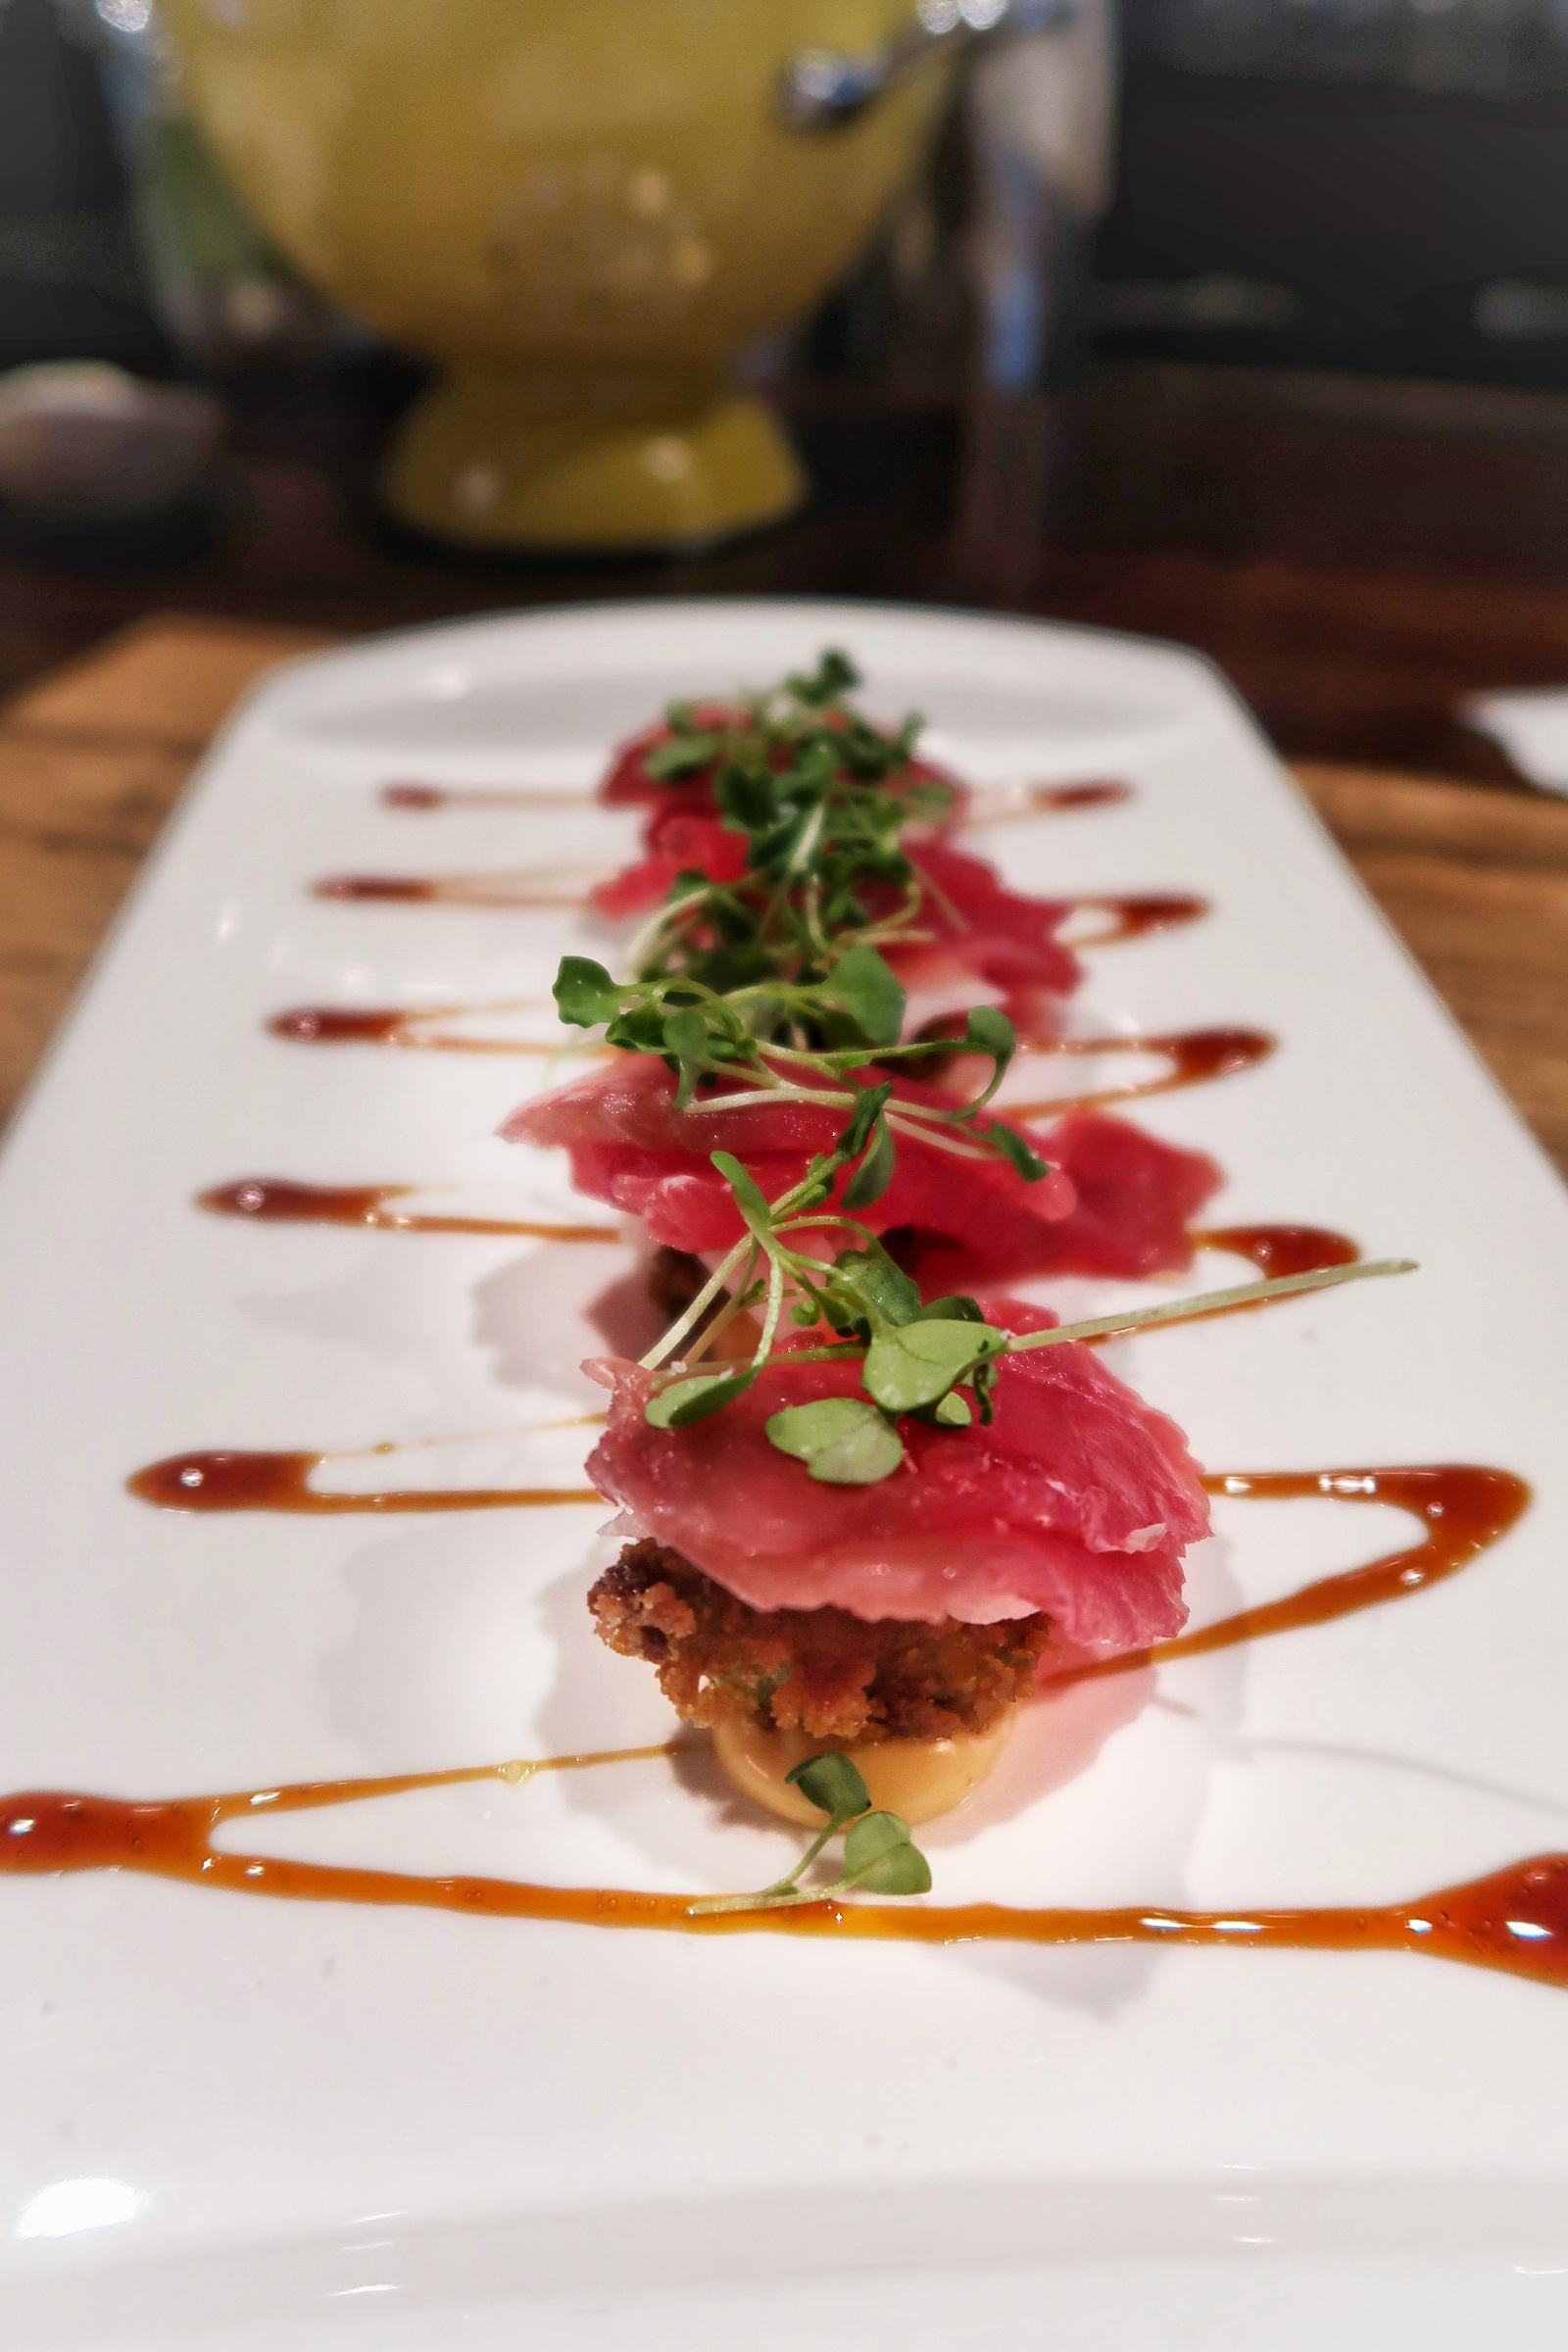 Stunning and tasty Tuna Sashimi; fresh local tuna, pickled jicama, fried avocado, unagi sauce and a dollop of spiced aioli.